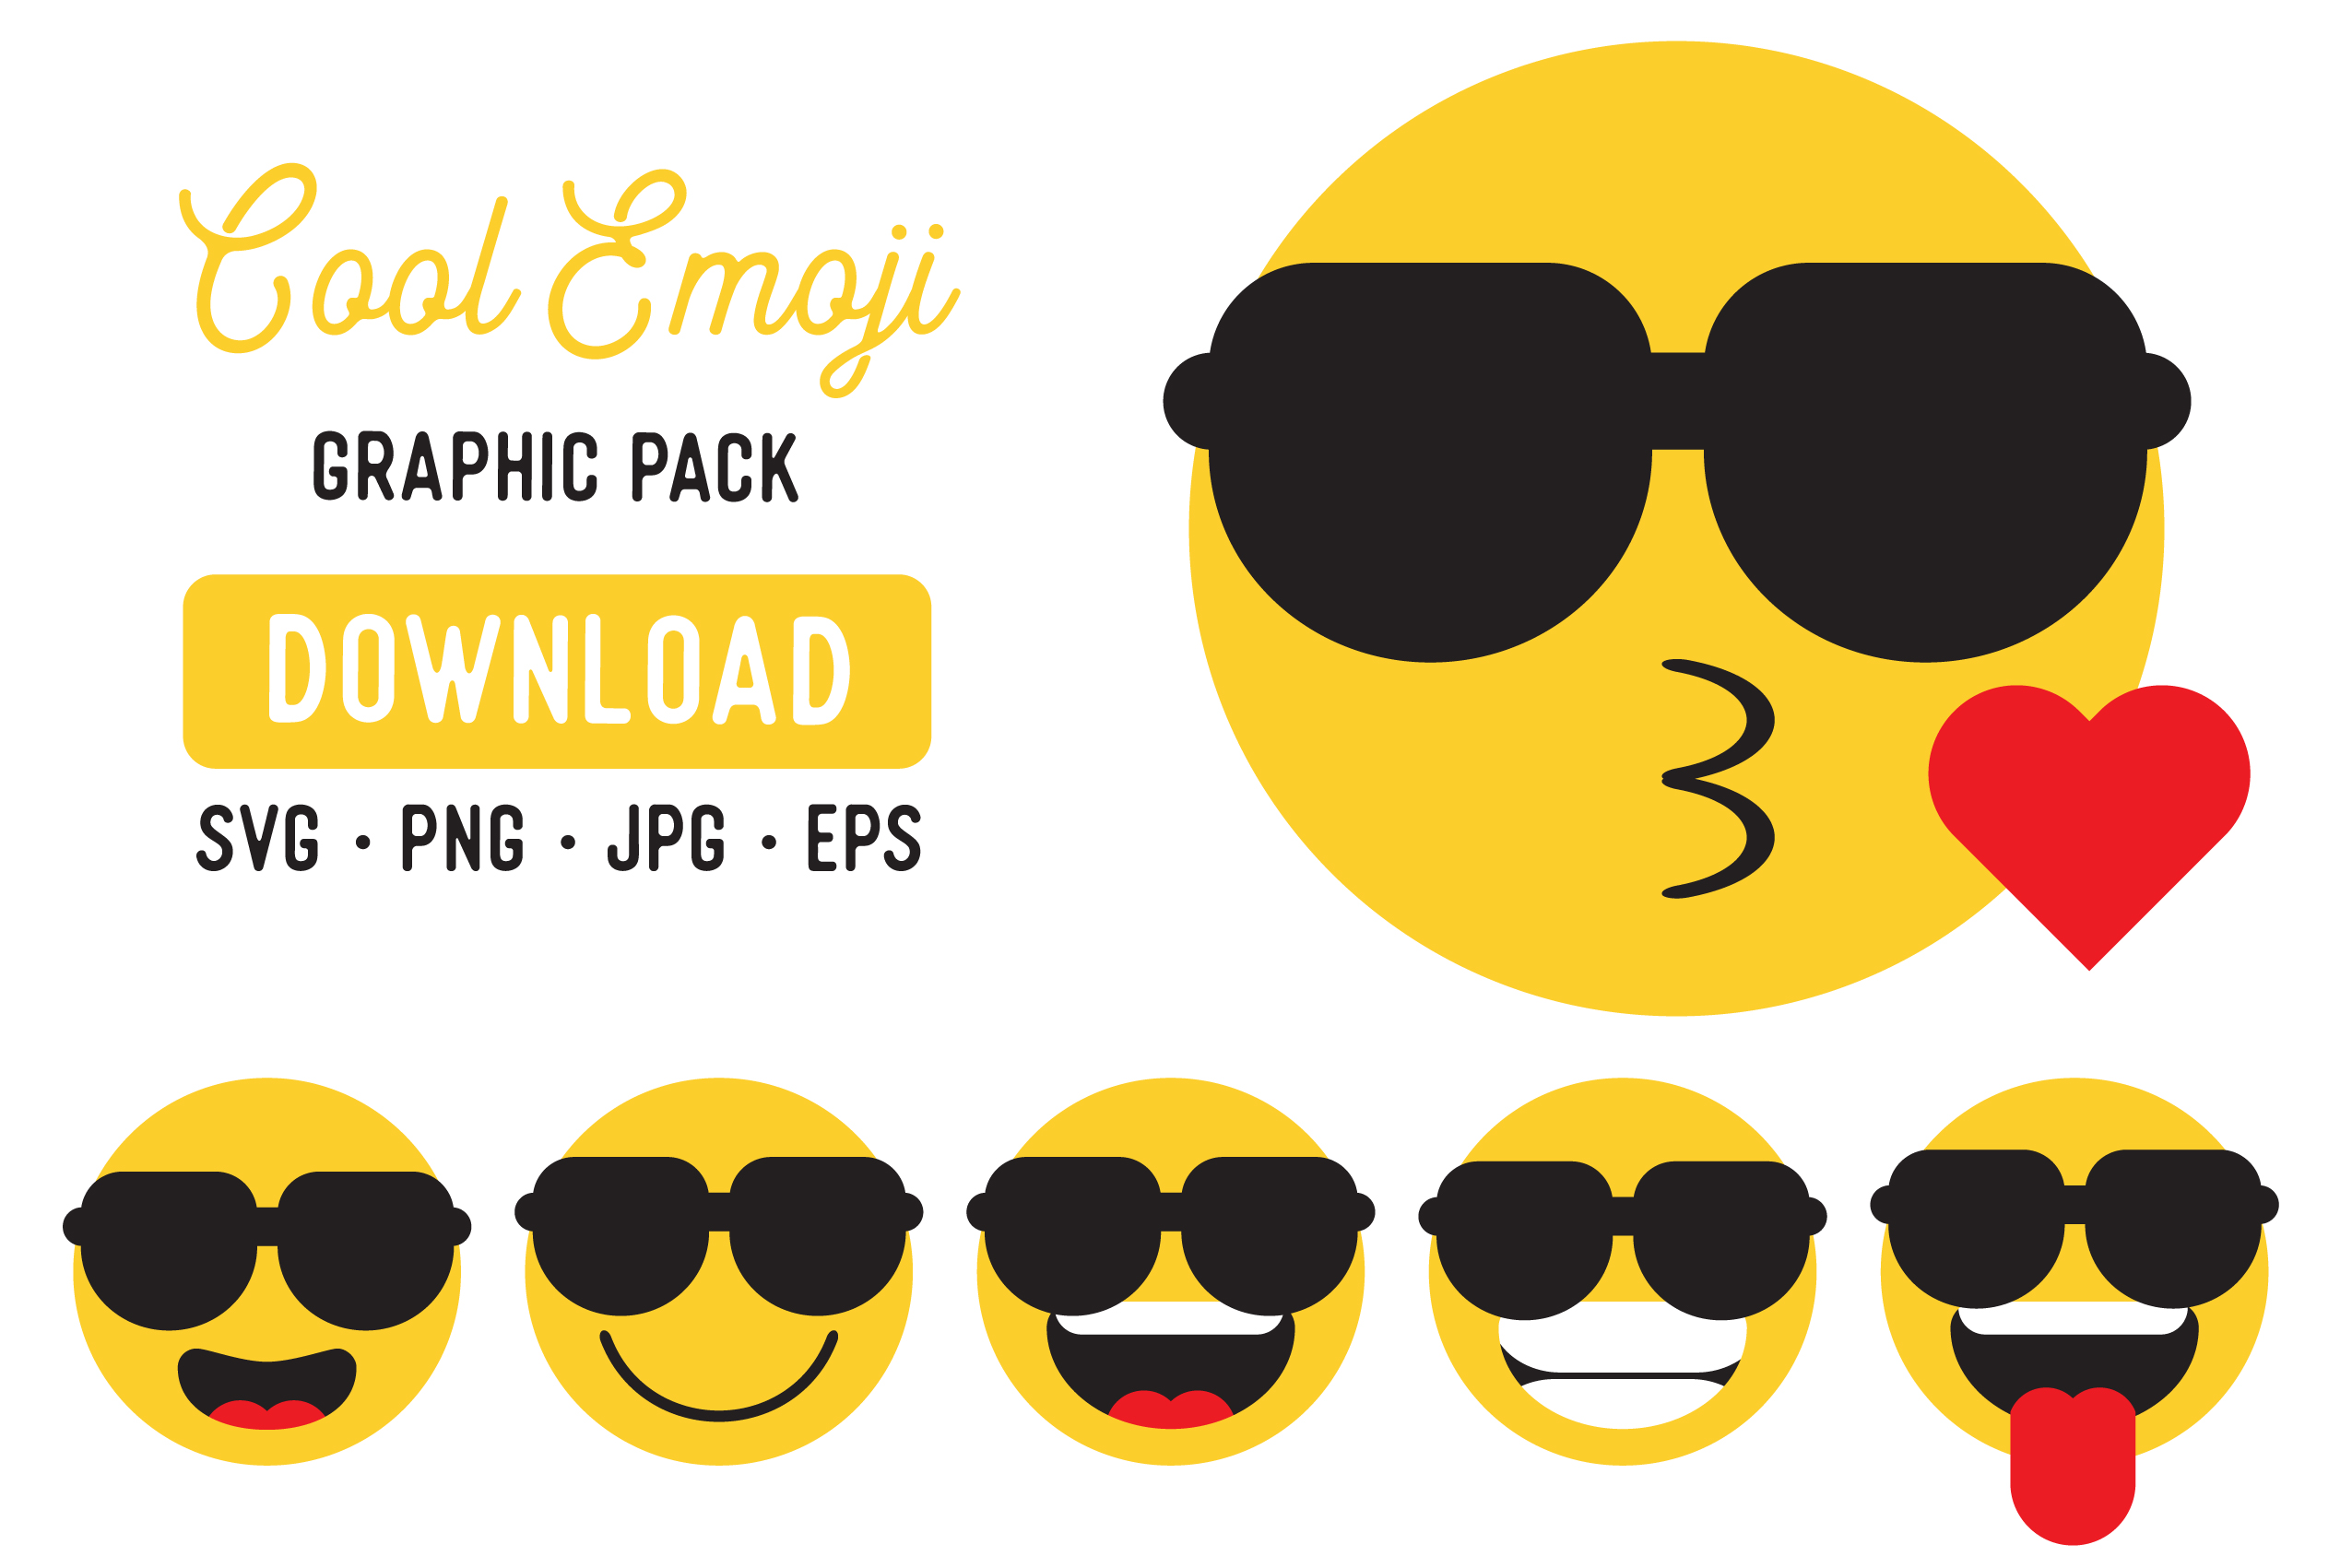 Download Free Cool Emoji Vector Graphic Clipart Pack Graphic By The Gradient for Cricut Explore, Silhouette and other cutting machines.